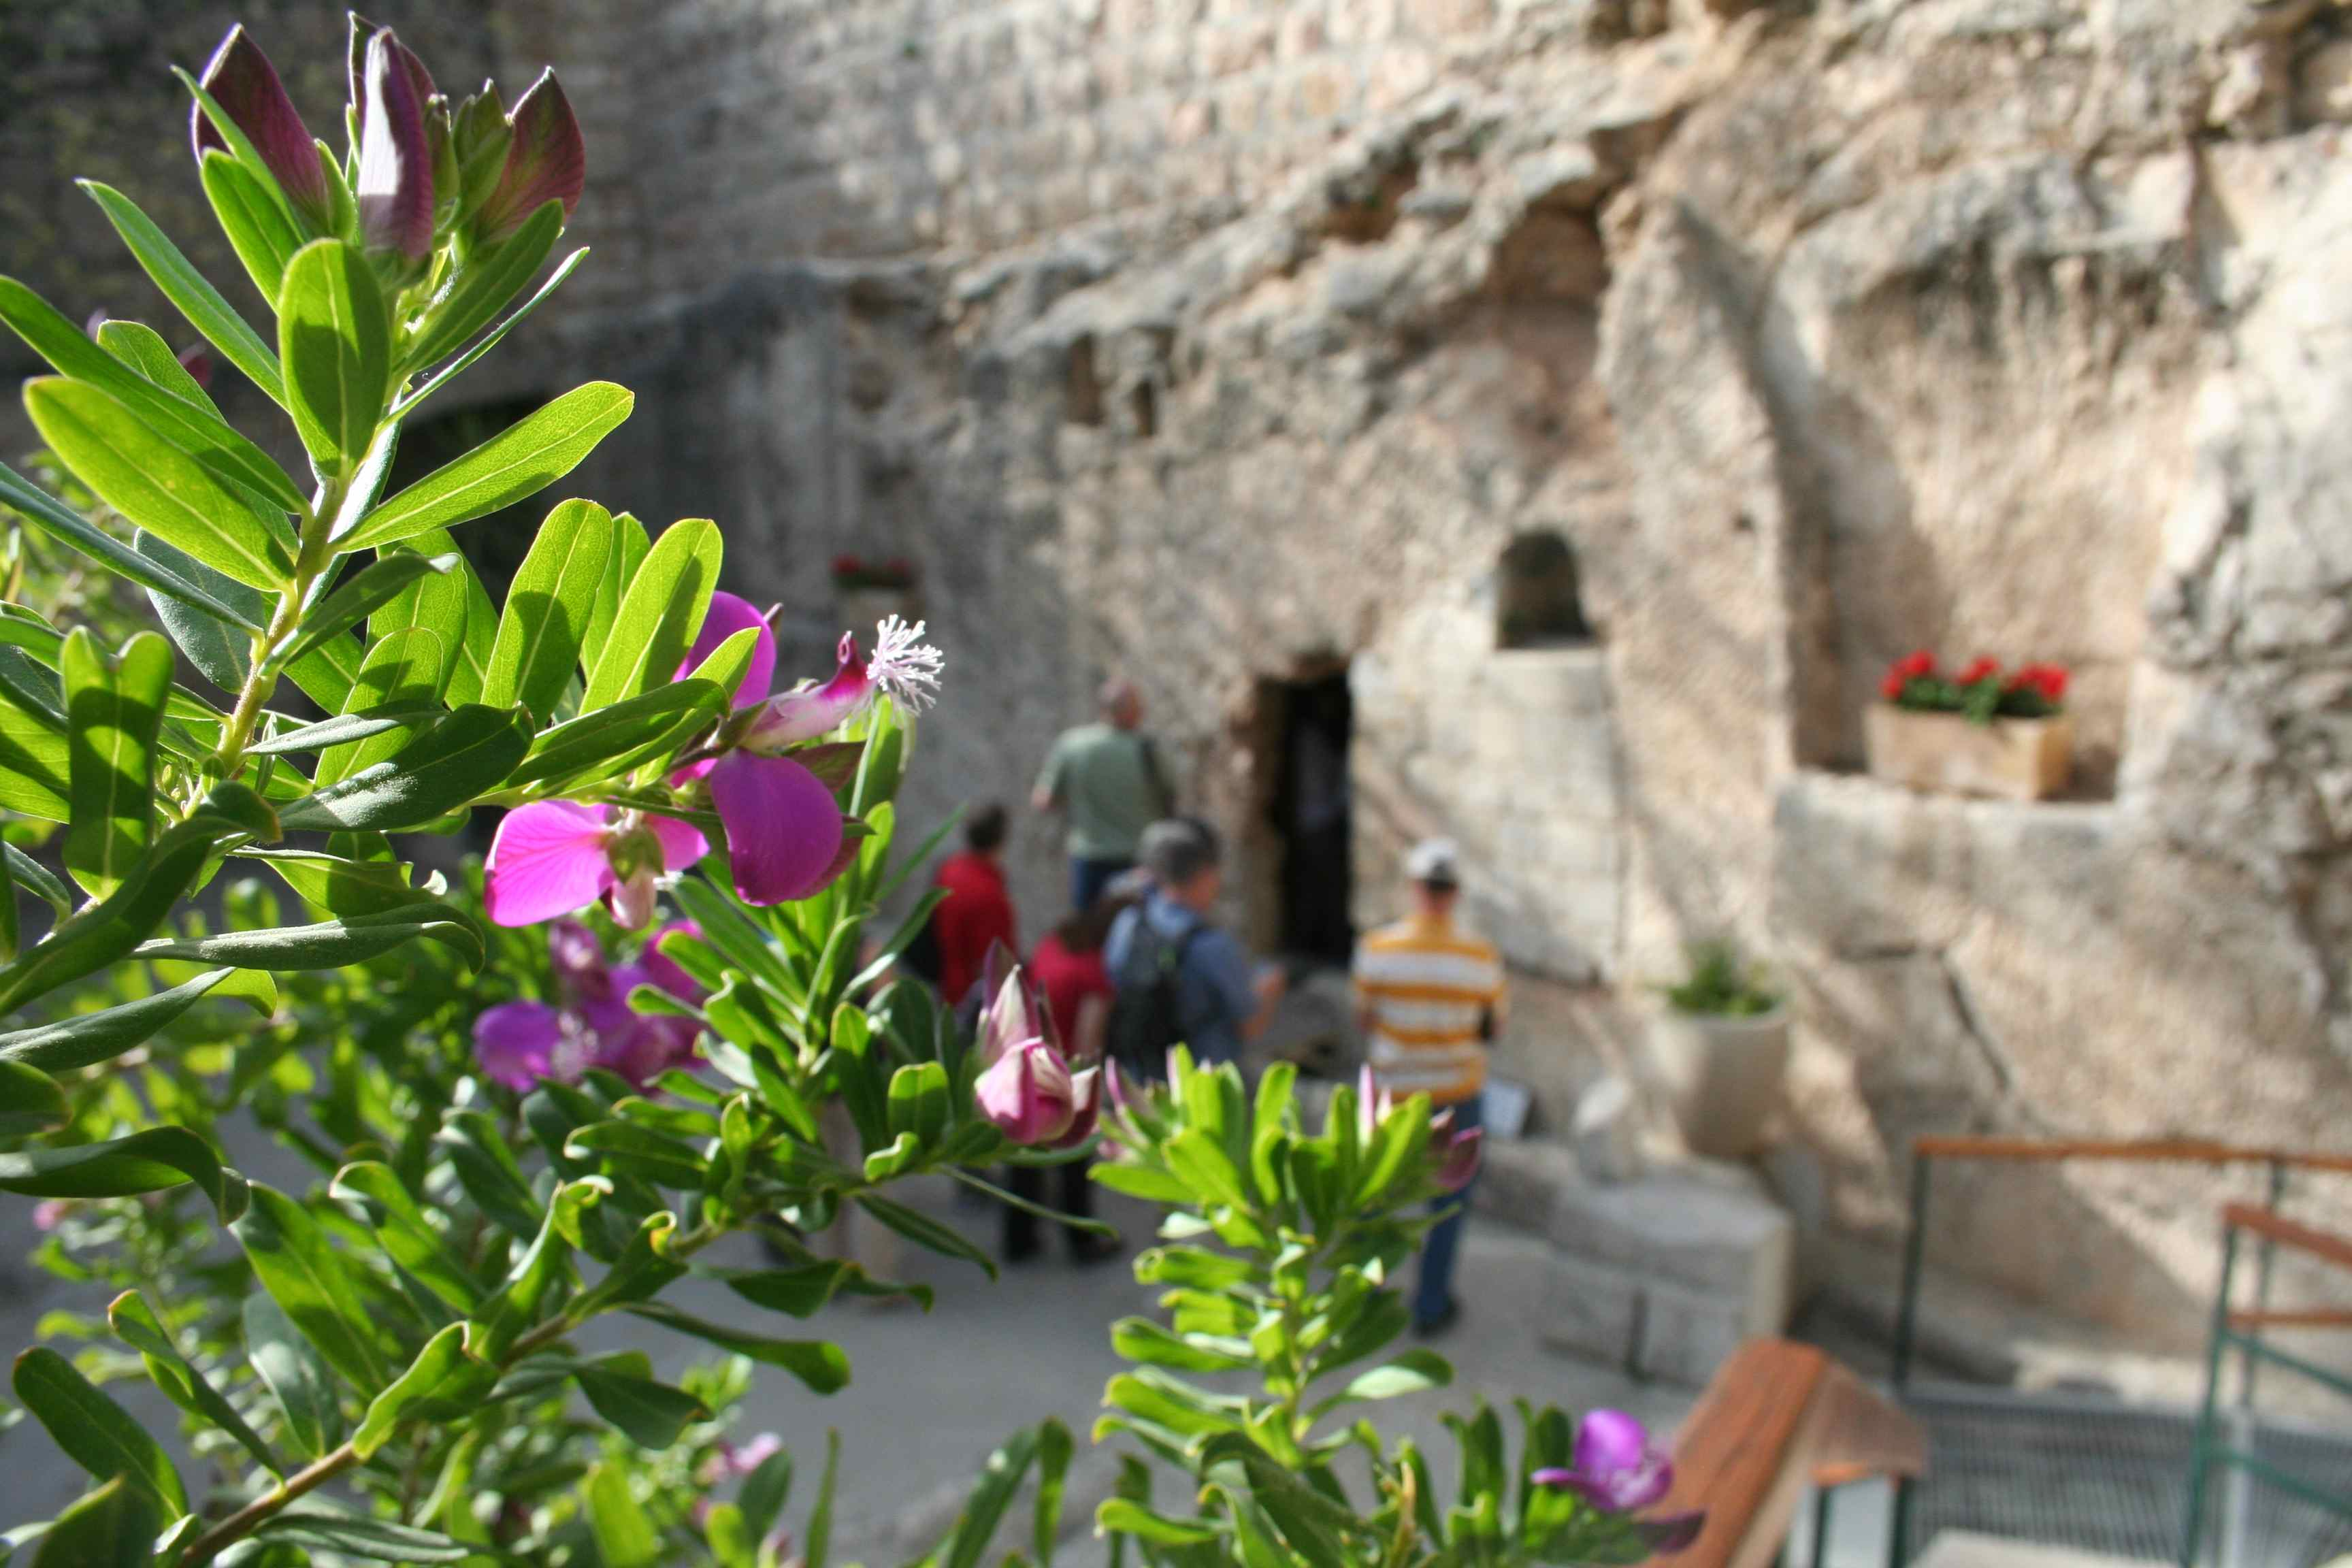 Days in Jerusalem: Pictures of the Wailing Wall and the Garden Tomb